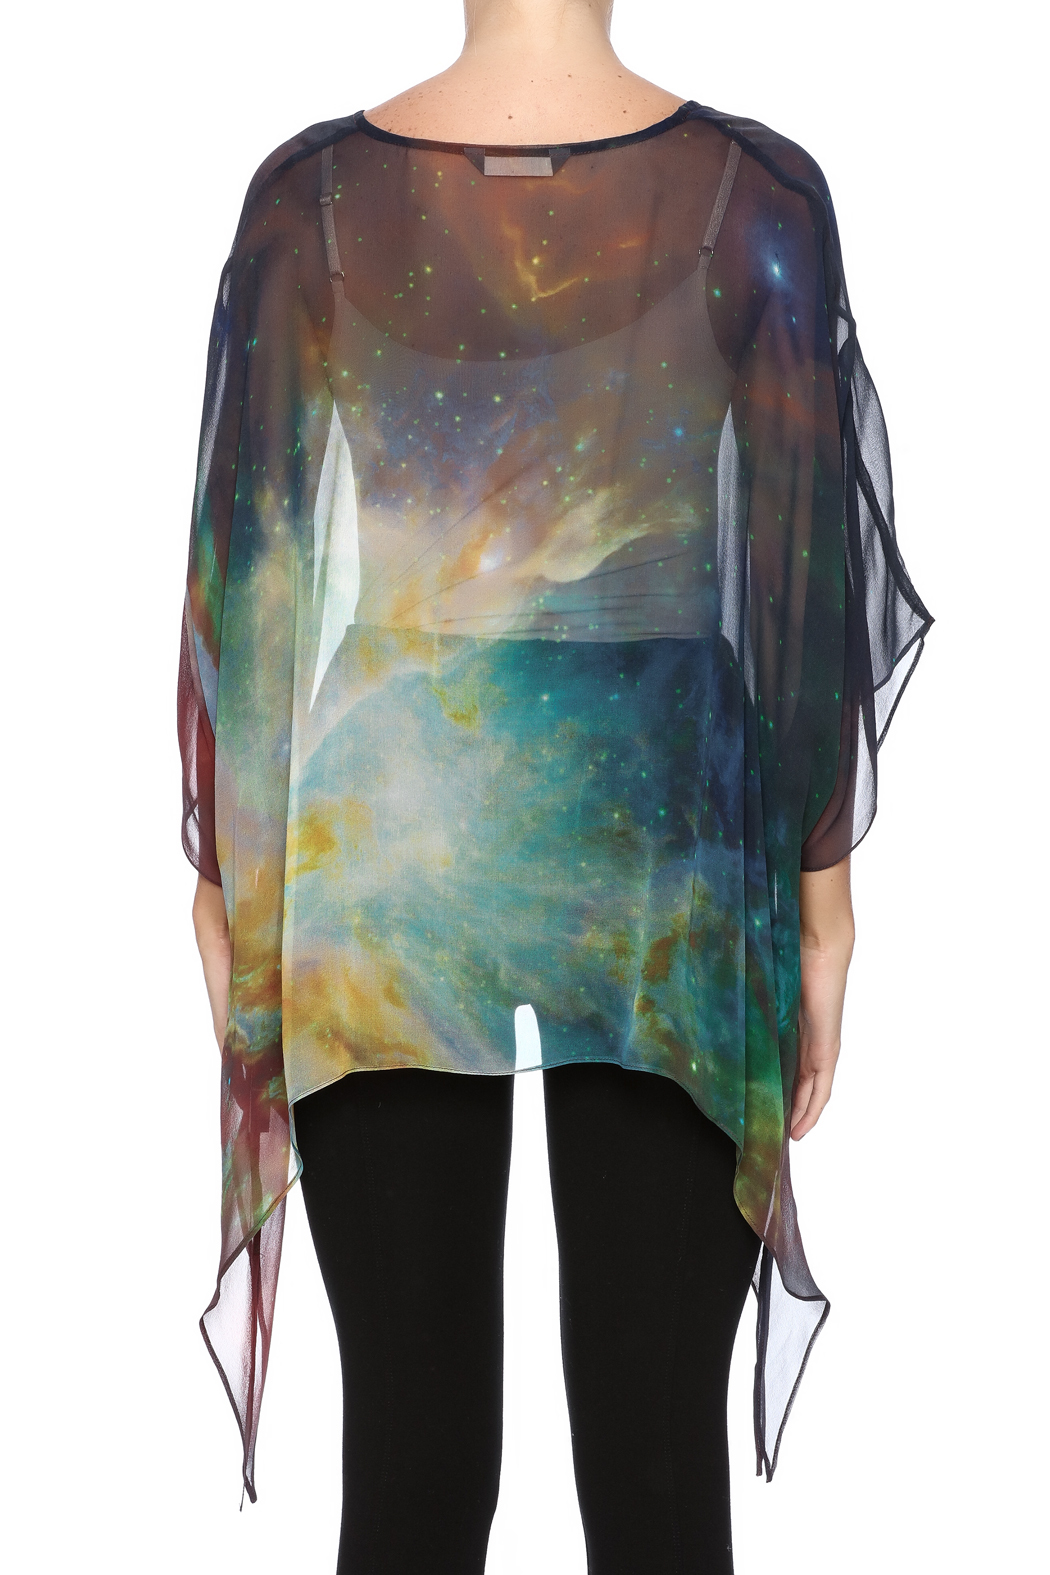 adc4e7276b19ac Cocoon House Nebula Silk Poncho from Omaha by Souq Ltq